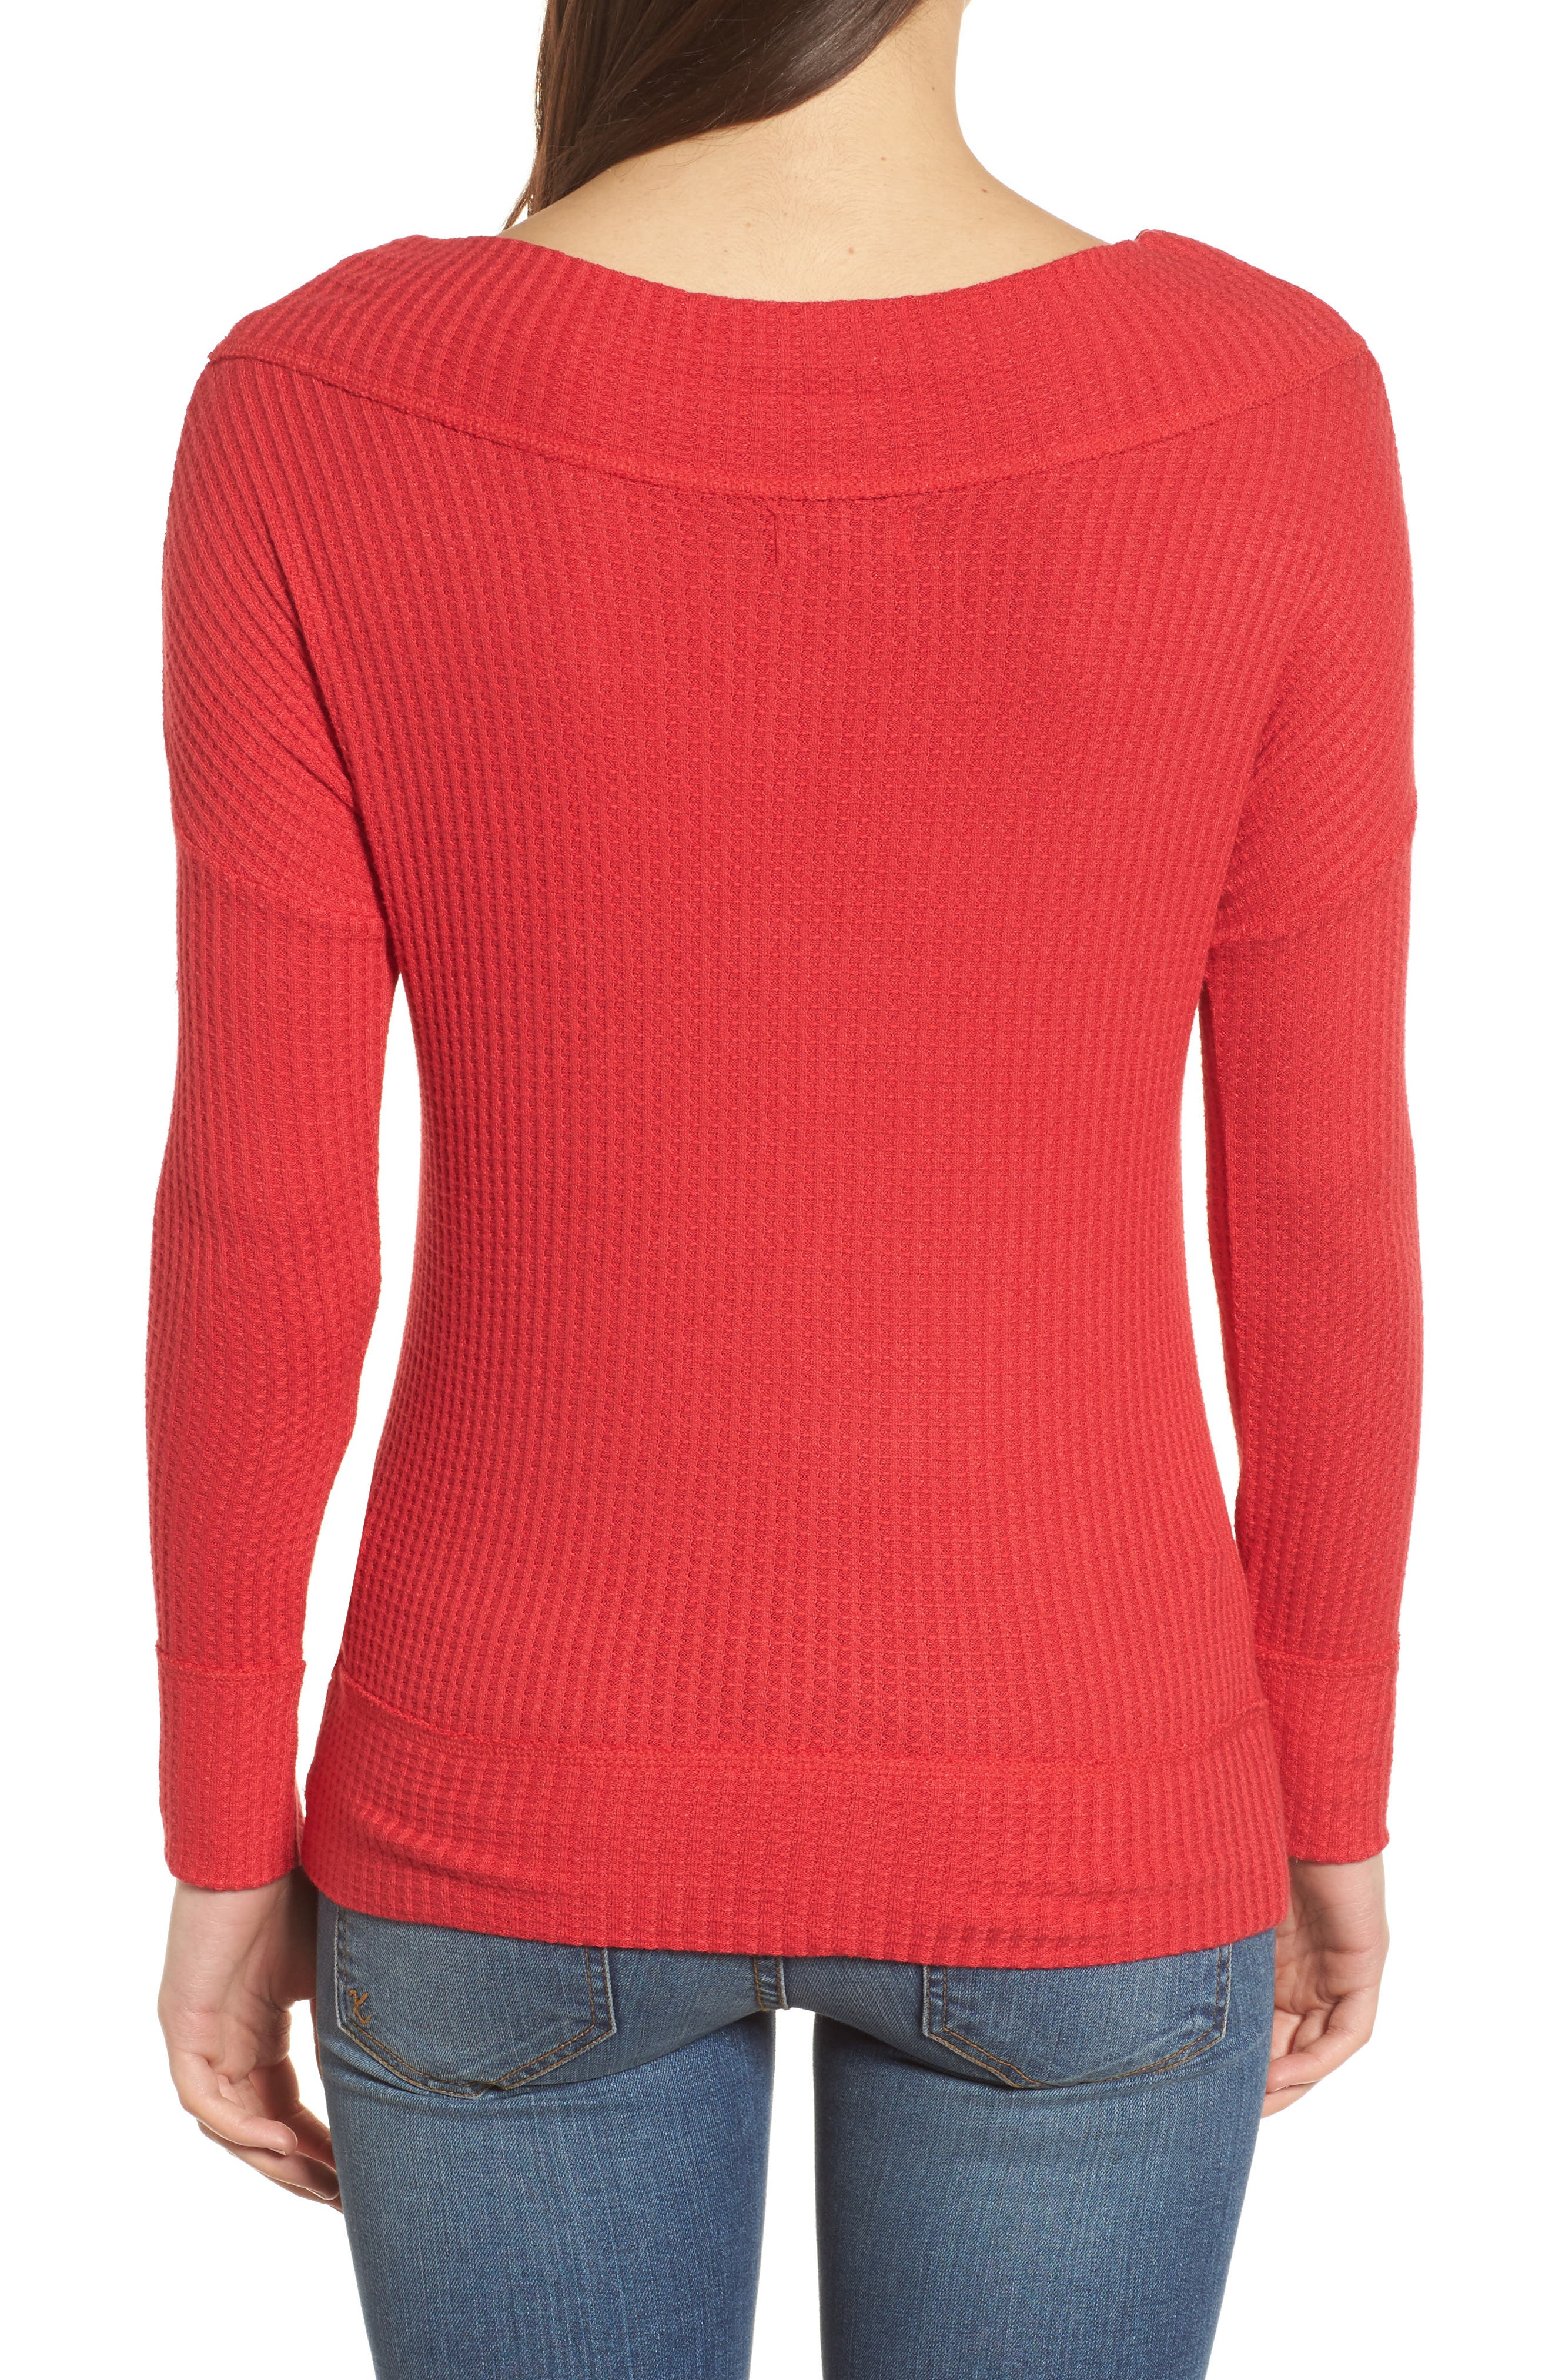 Off the Shoulder Thermal Knit Top,                             Alternate thumbnail 2, color,                             Red